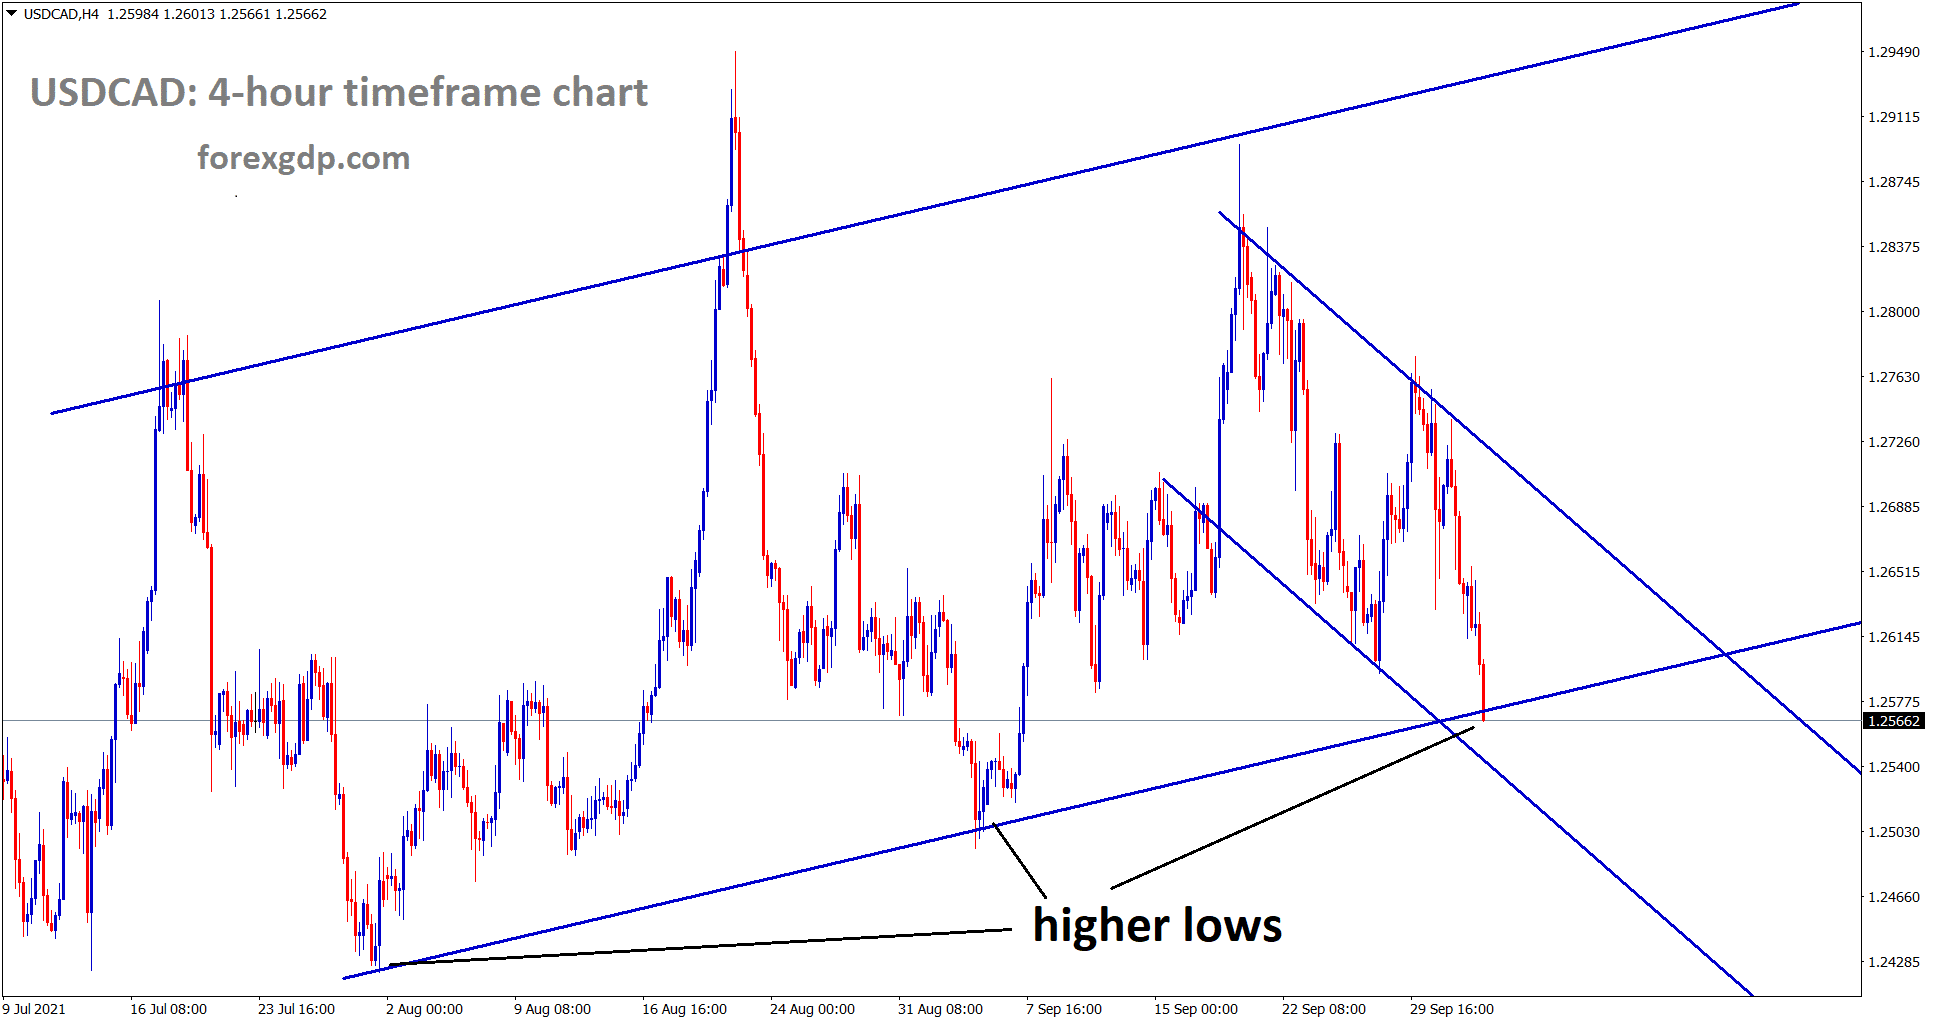 USDCAD has reached the higher low level of an uptrend line wait for breakout or reversal.